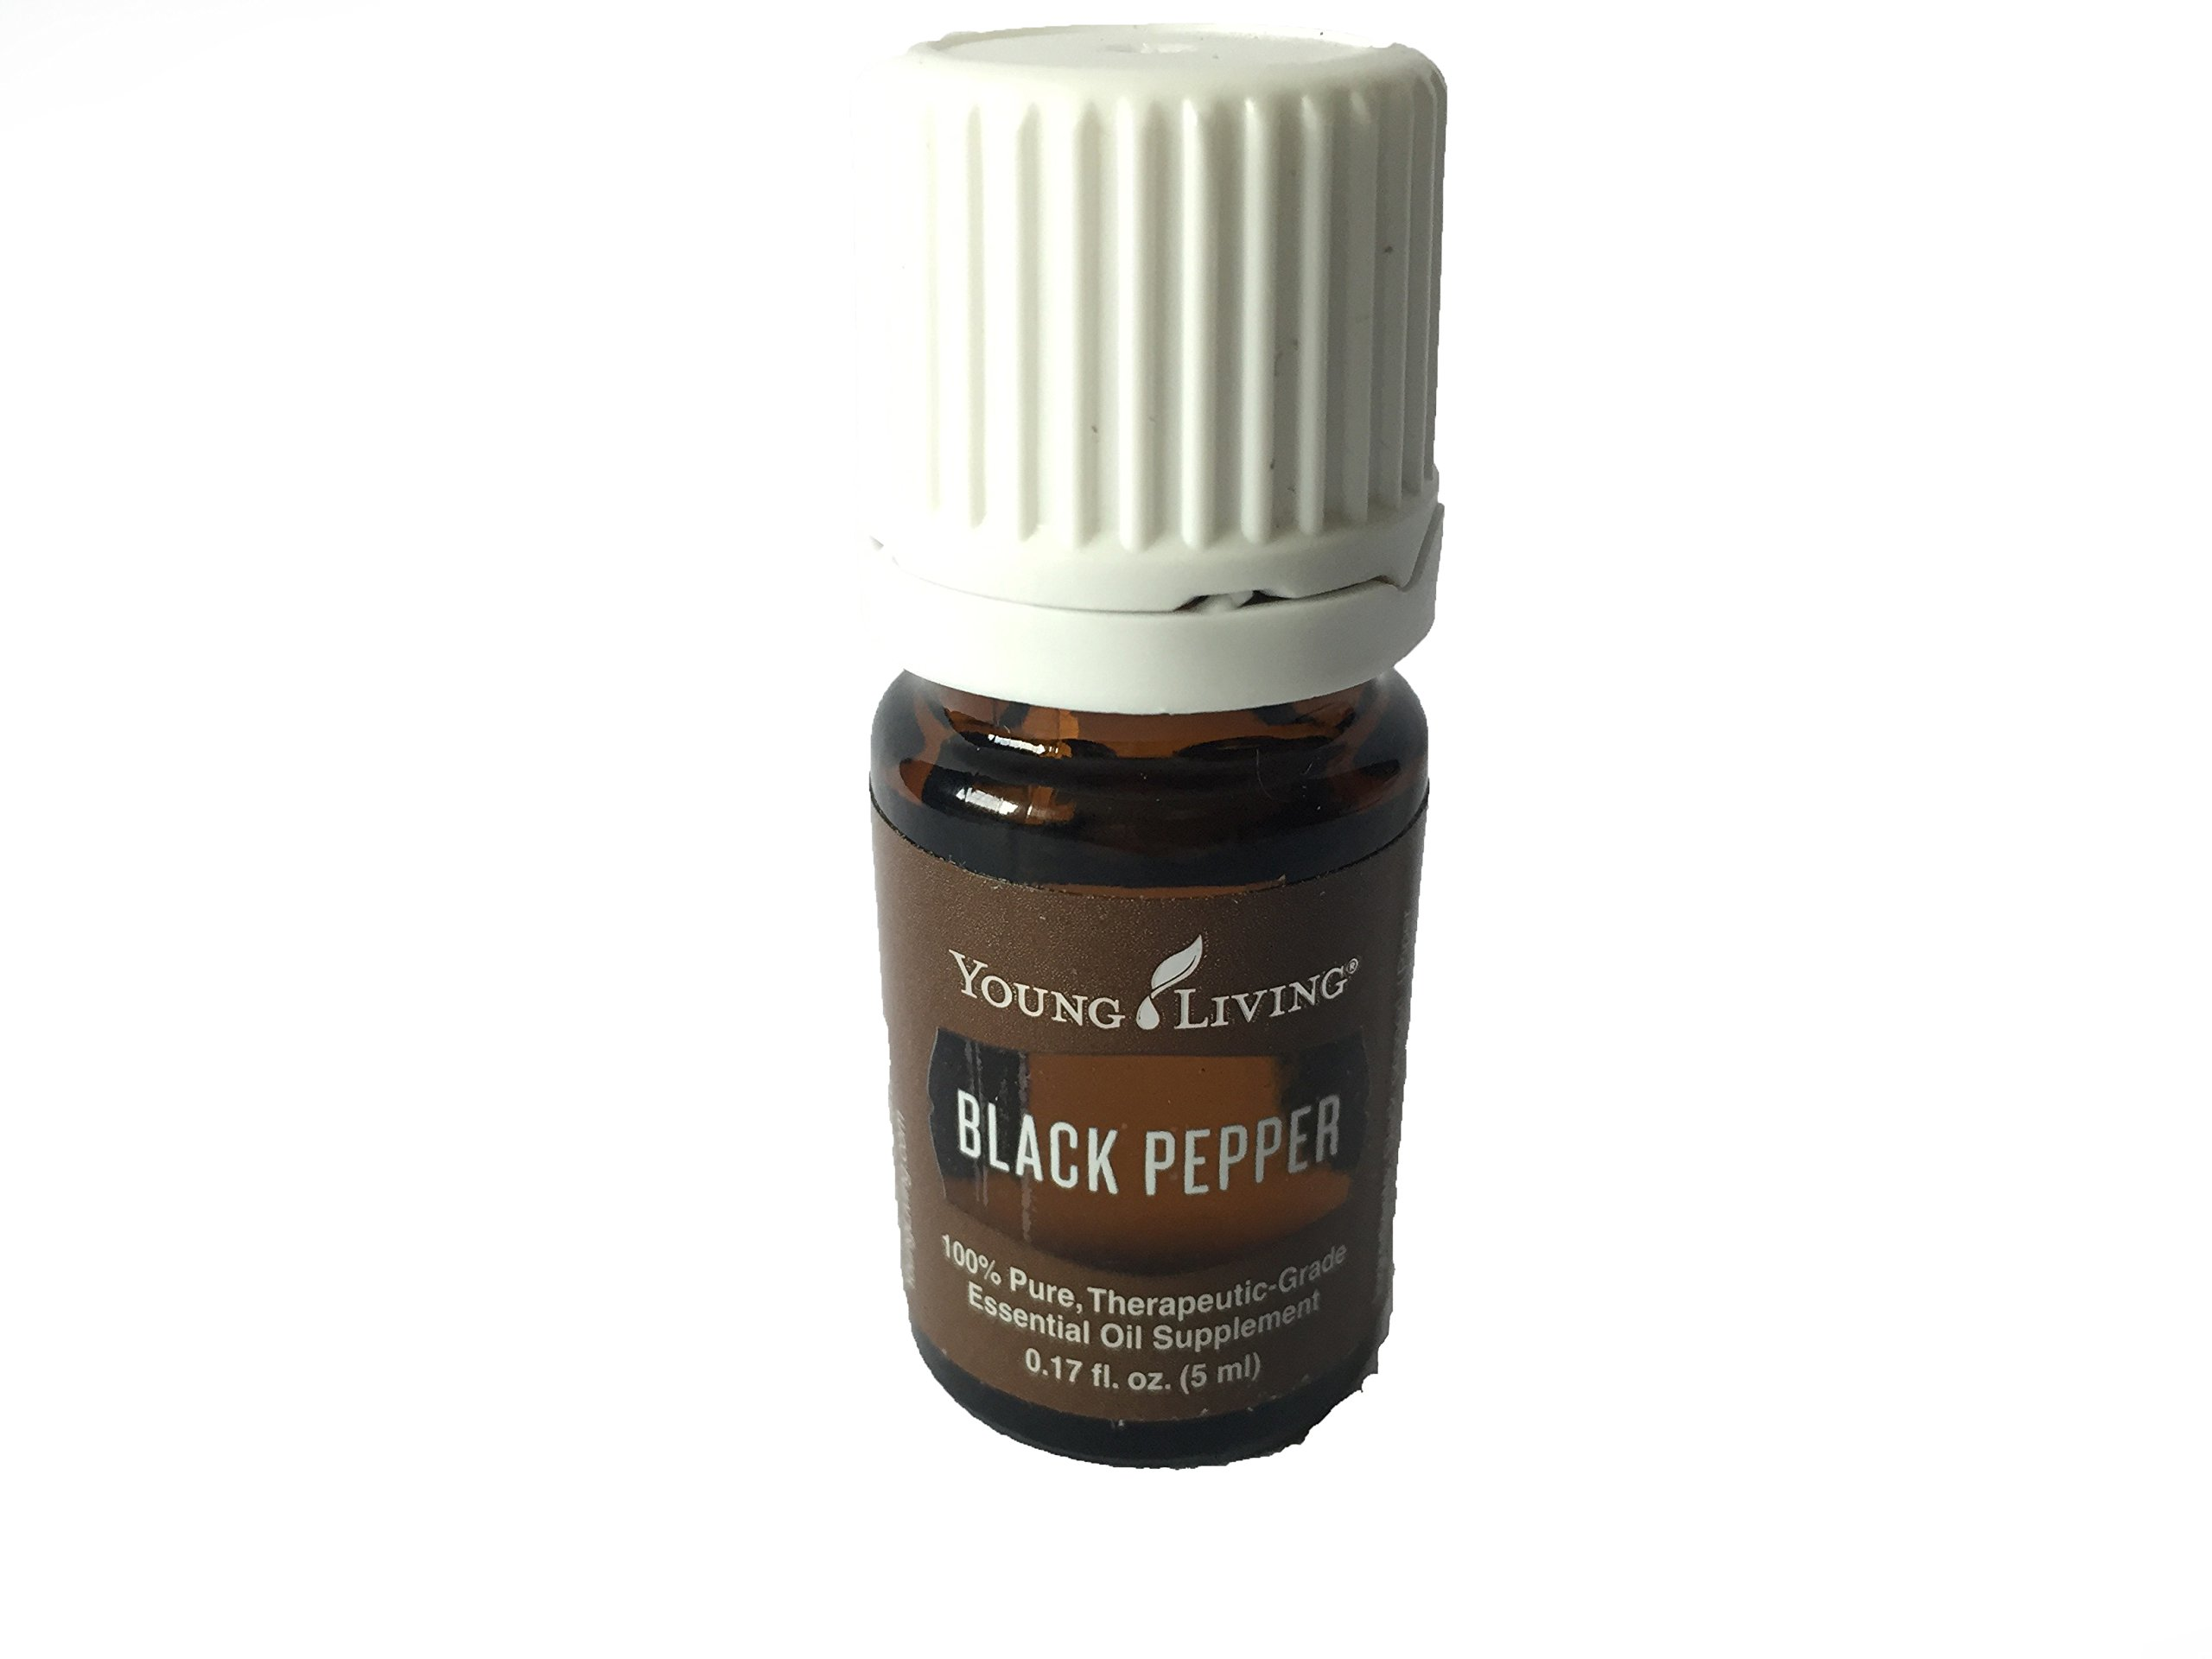 Black Pepper 5ml by Young Living